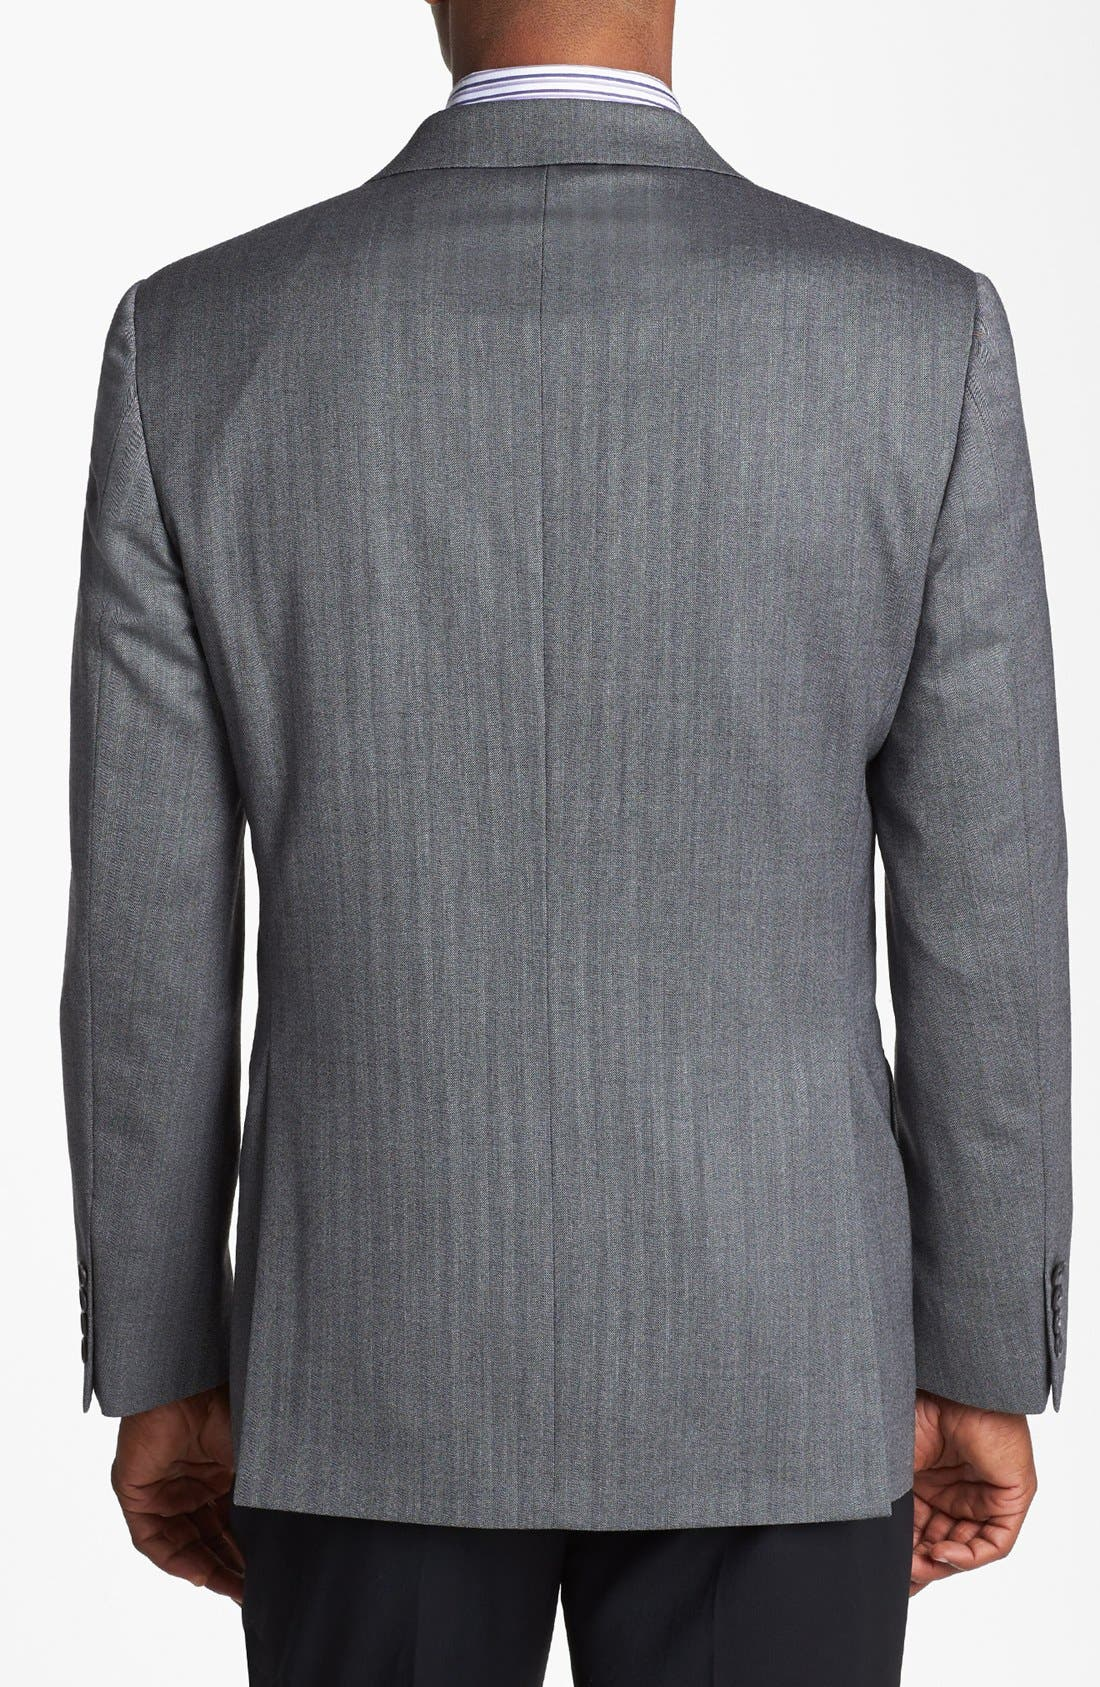 Alternate Image 3  - Joseph Abboud 'Profile/Hybrid' Trim Fit Herringbone Sportcoat